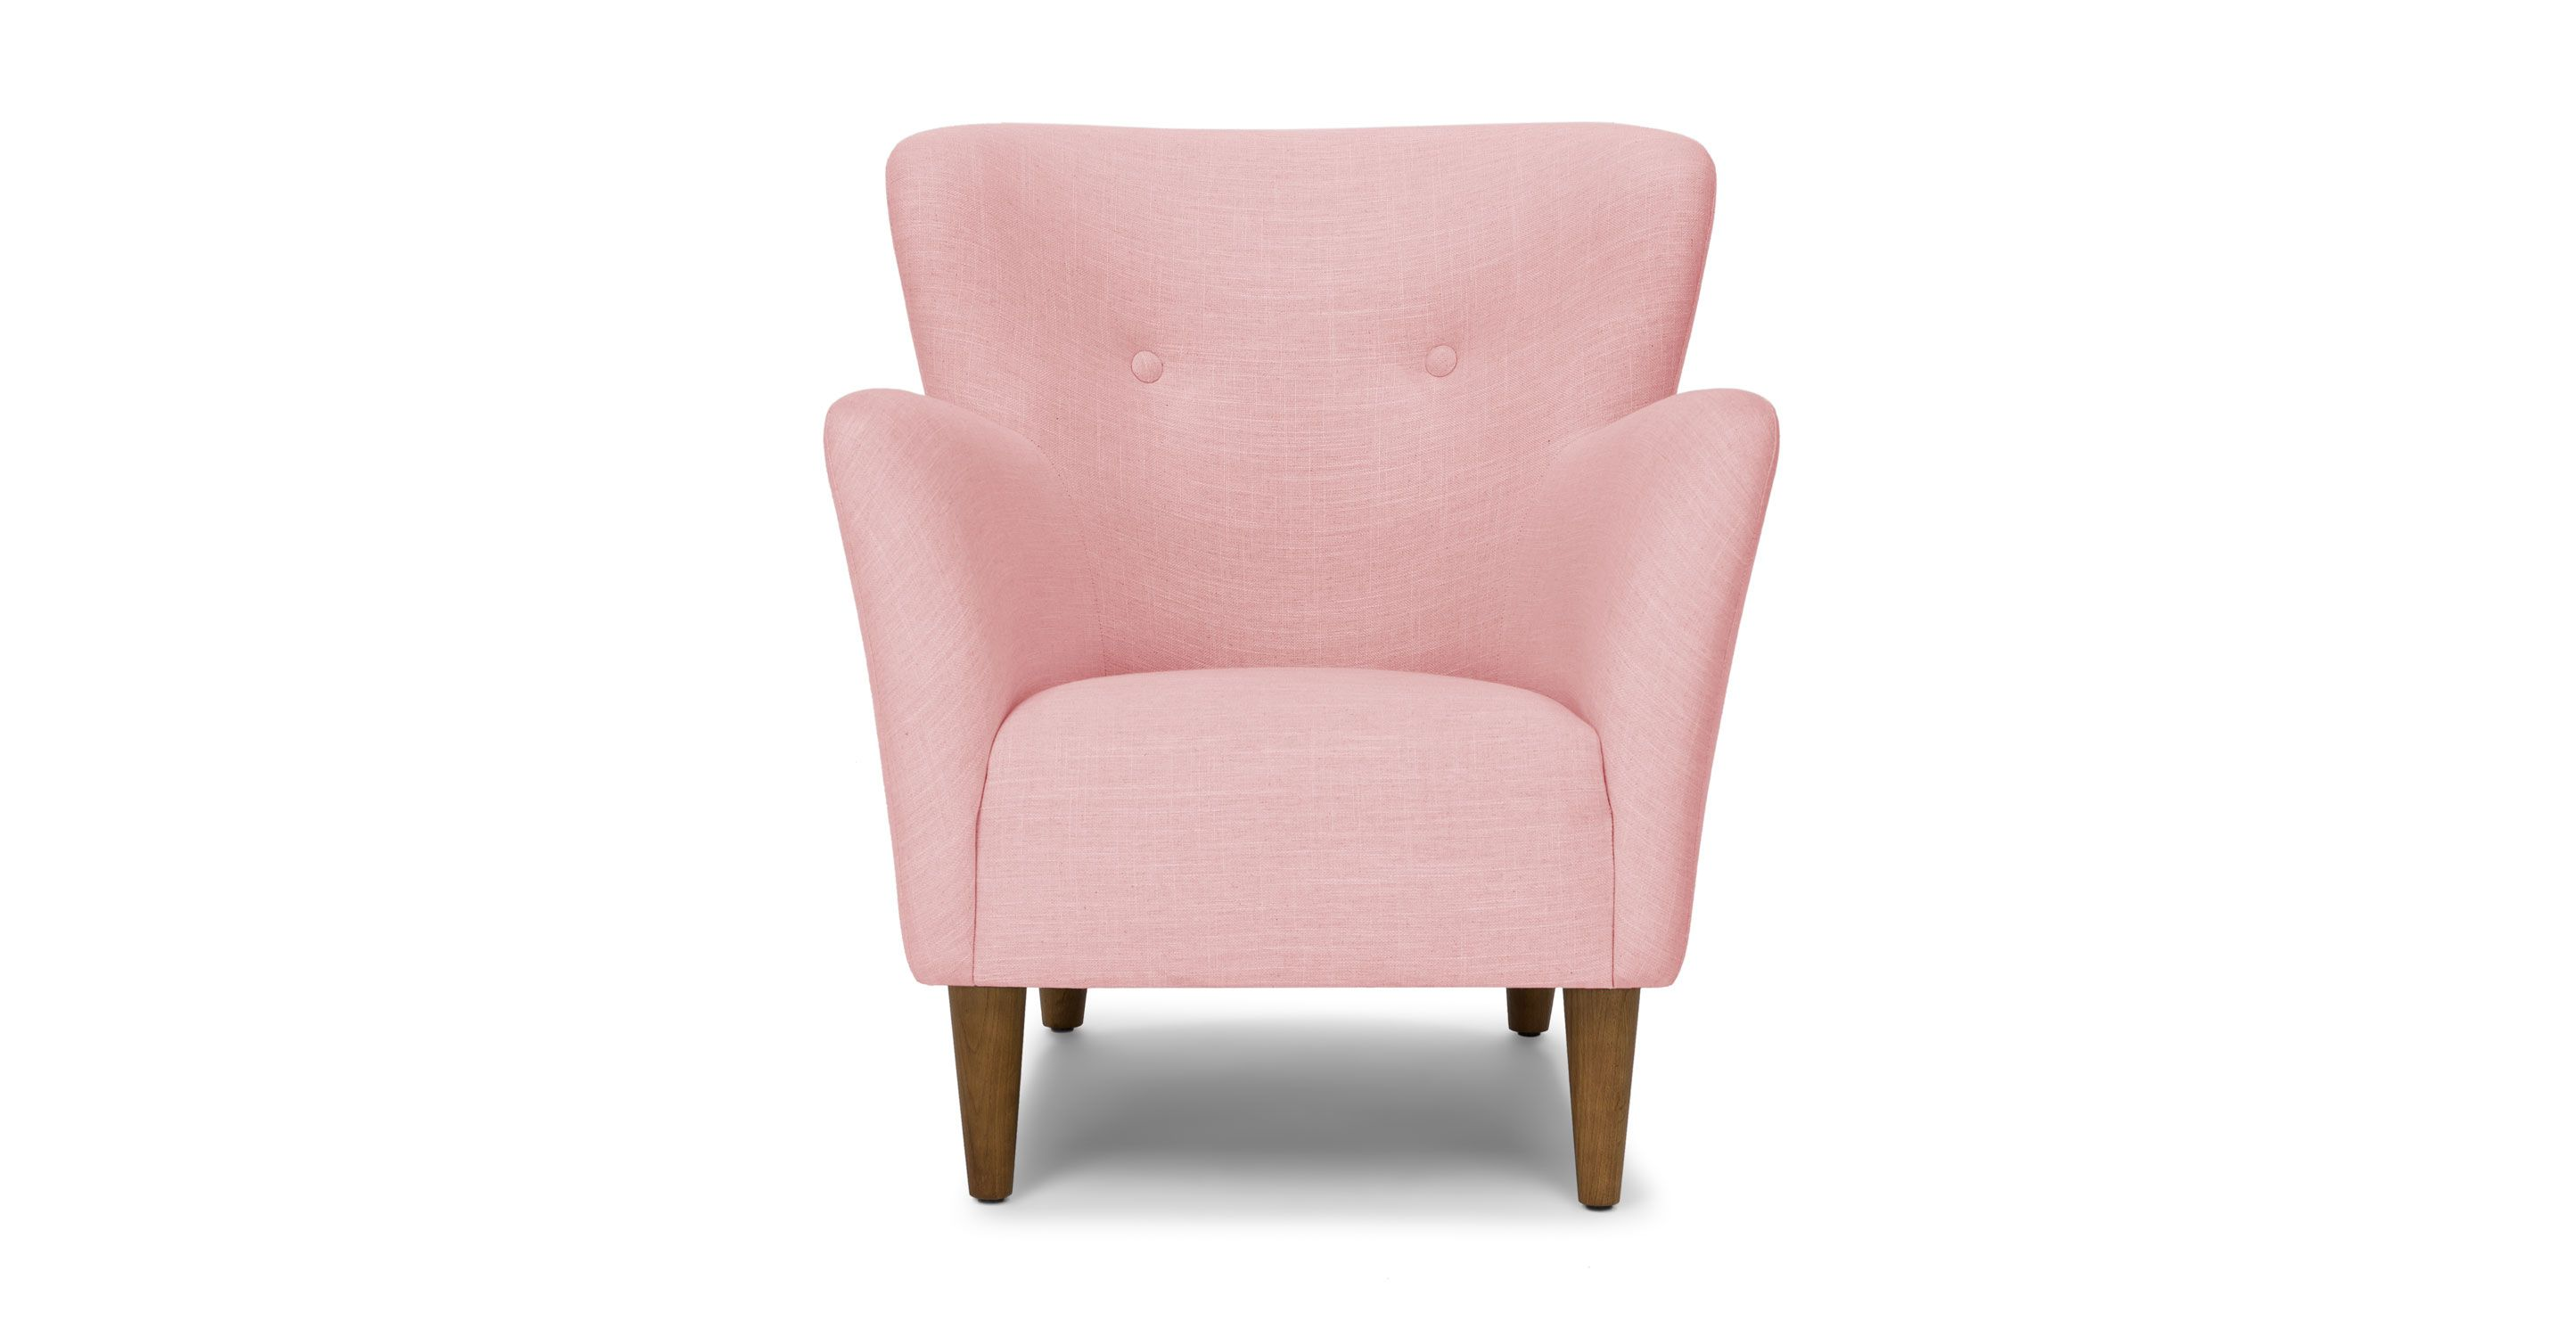 Scandinavian Accent Chair Pink Accent Armchair With Solid Wood Legs Article Happy